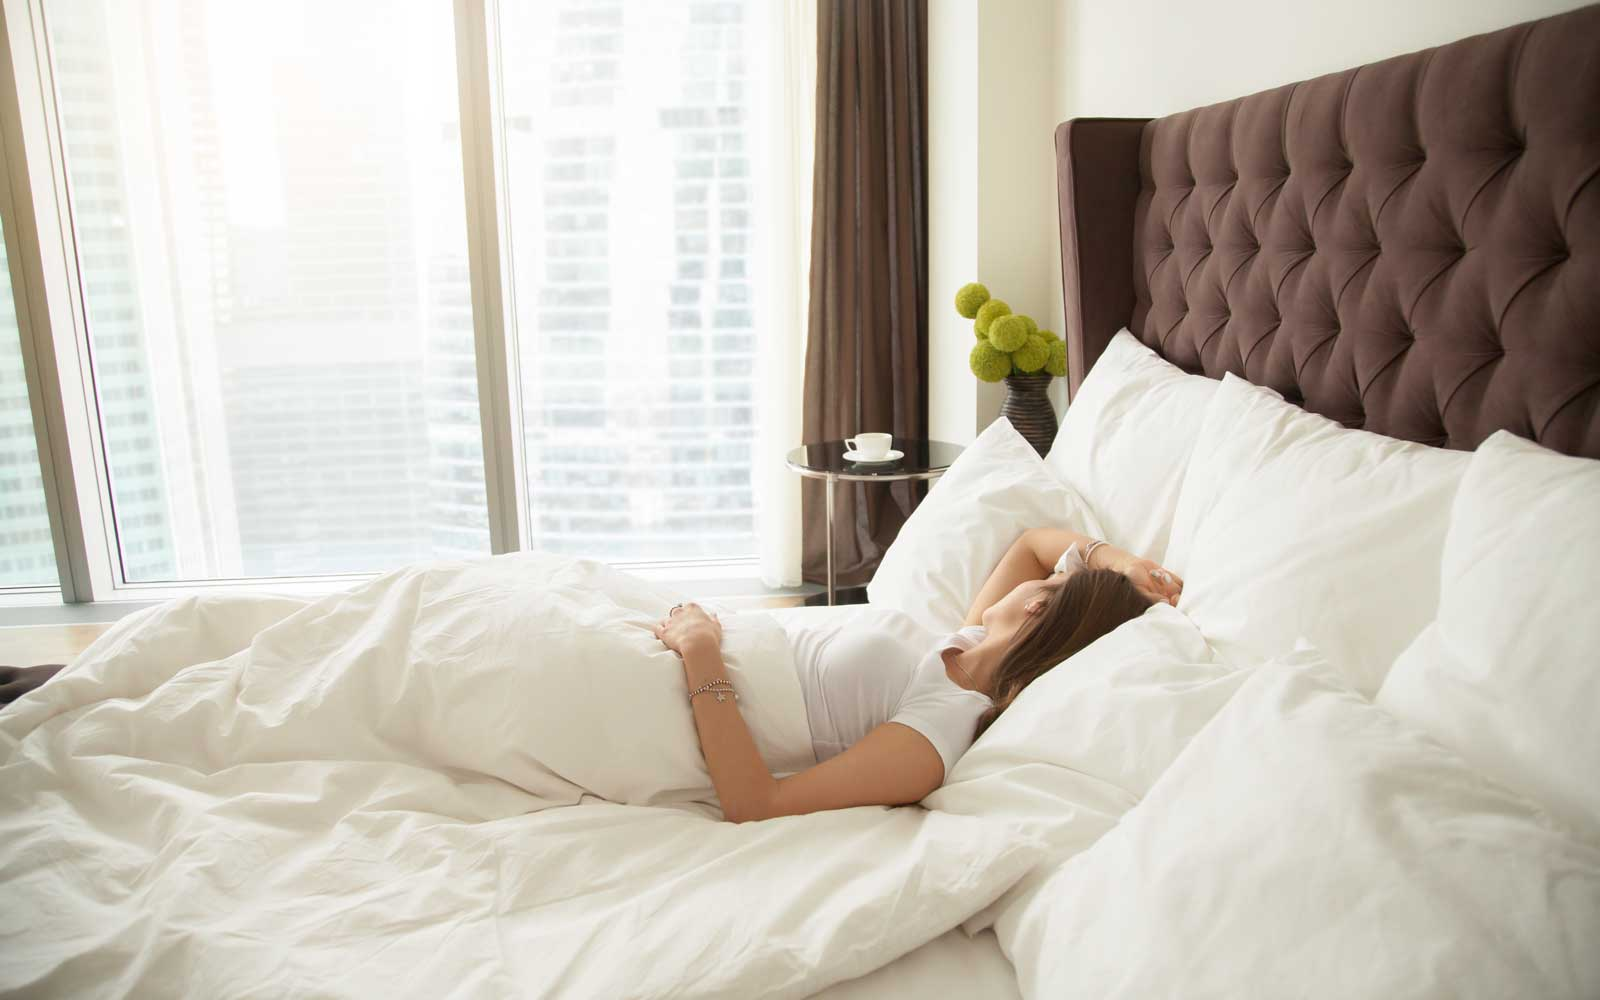 Woman sleeping in a hotel room